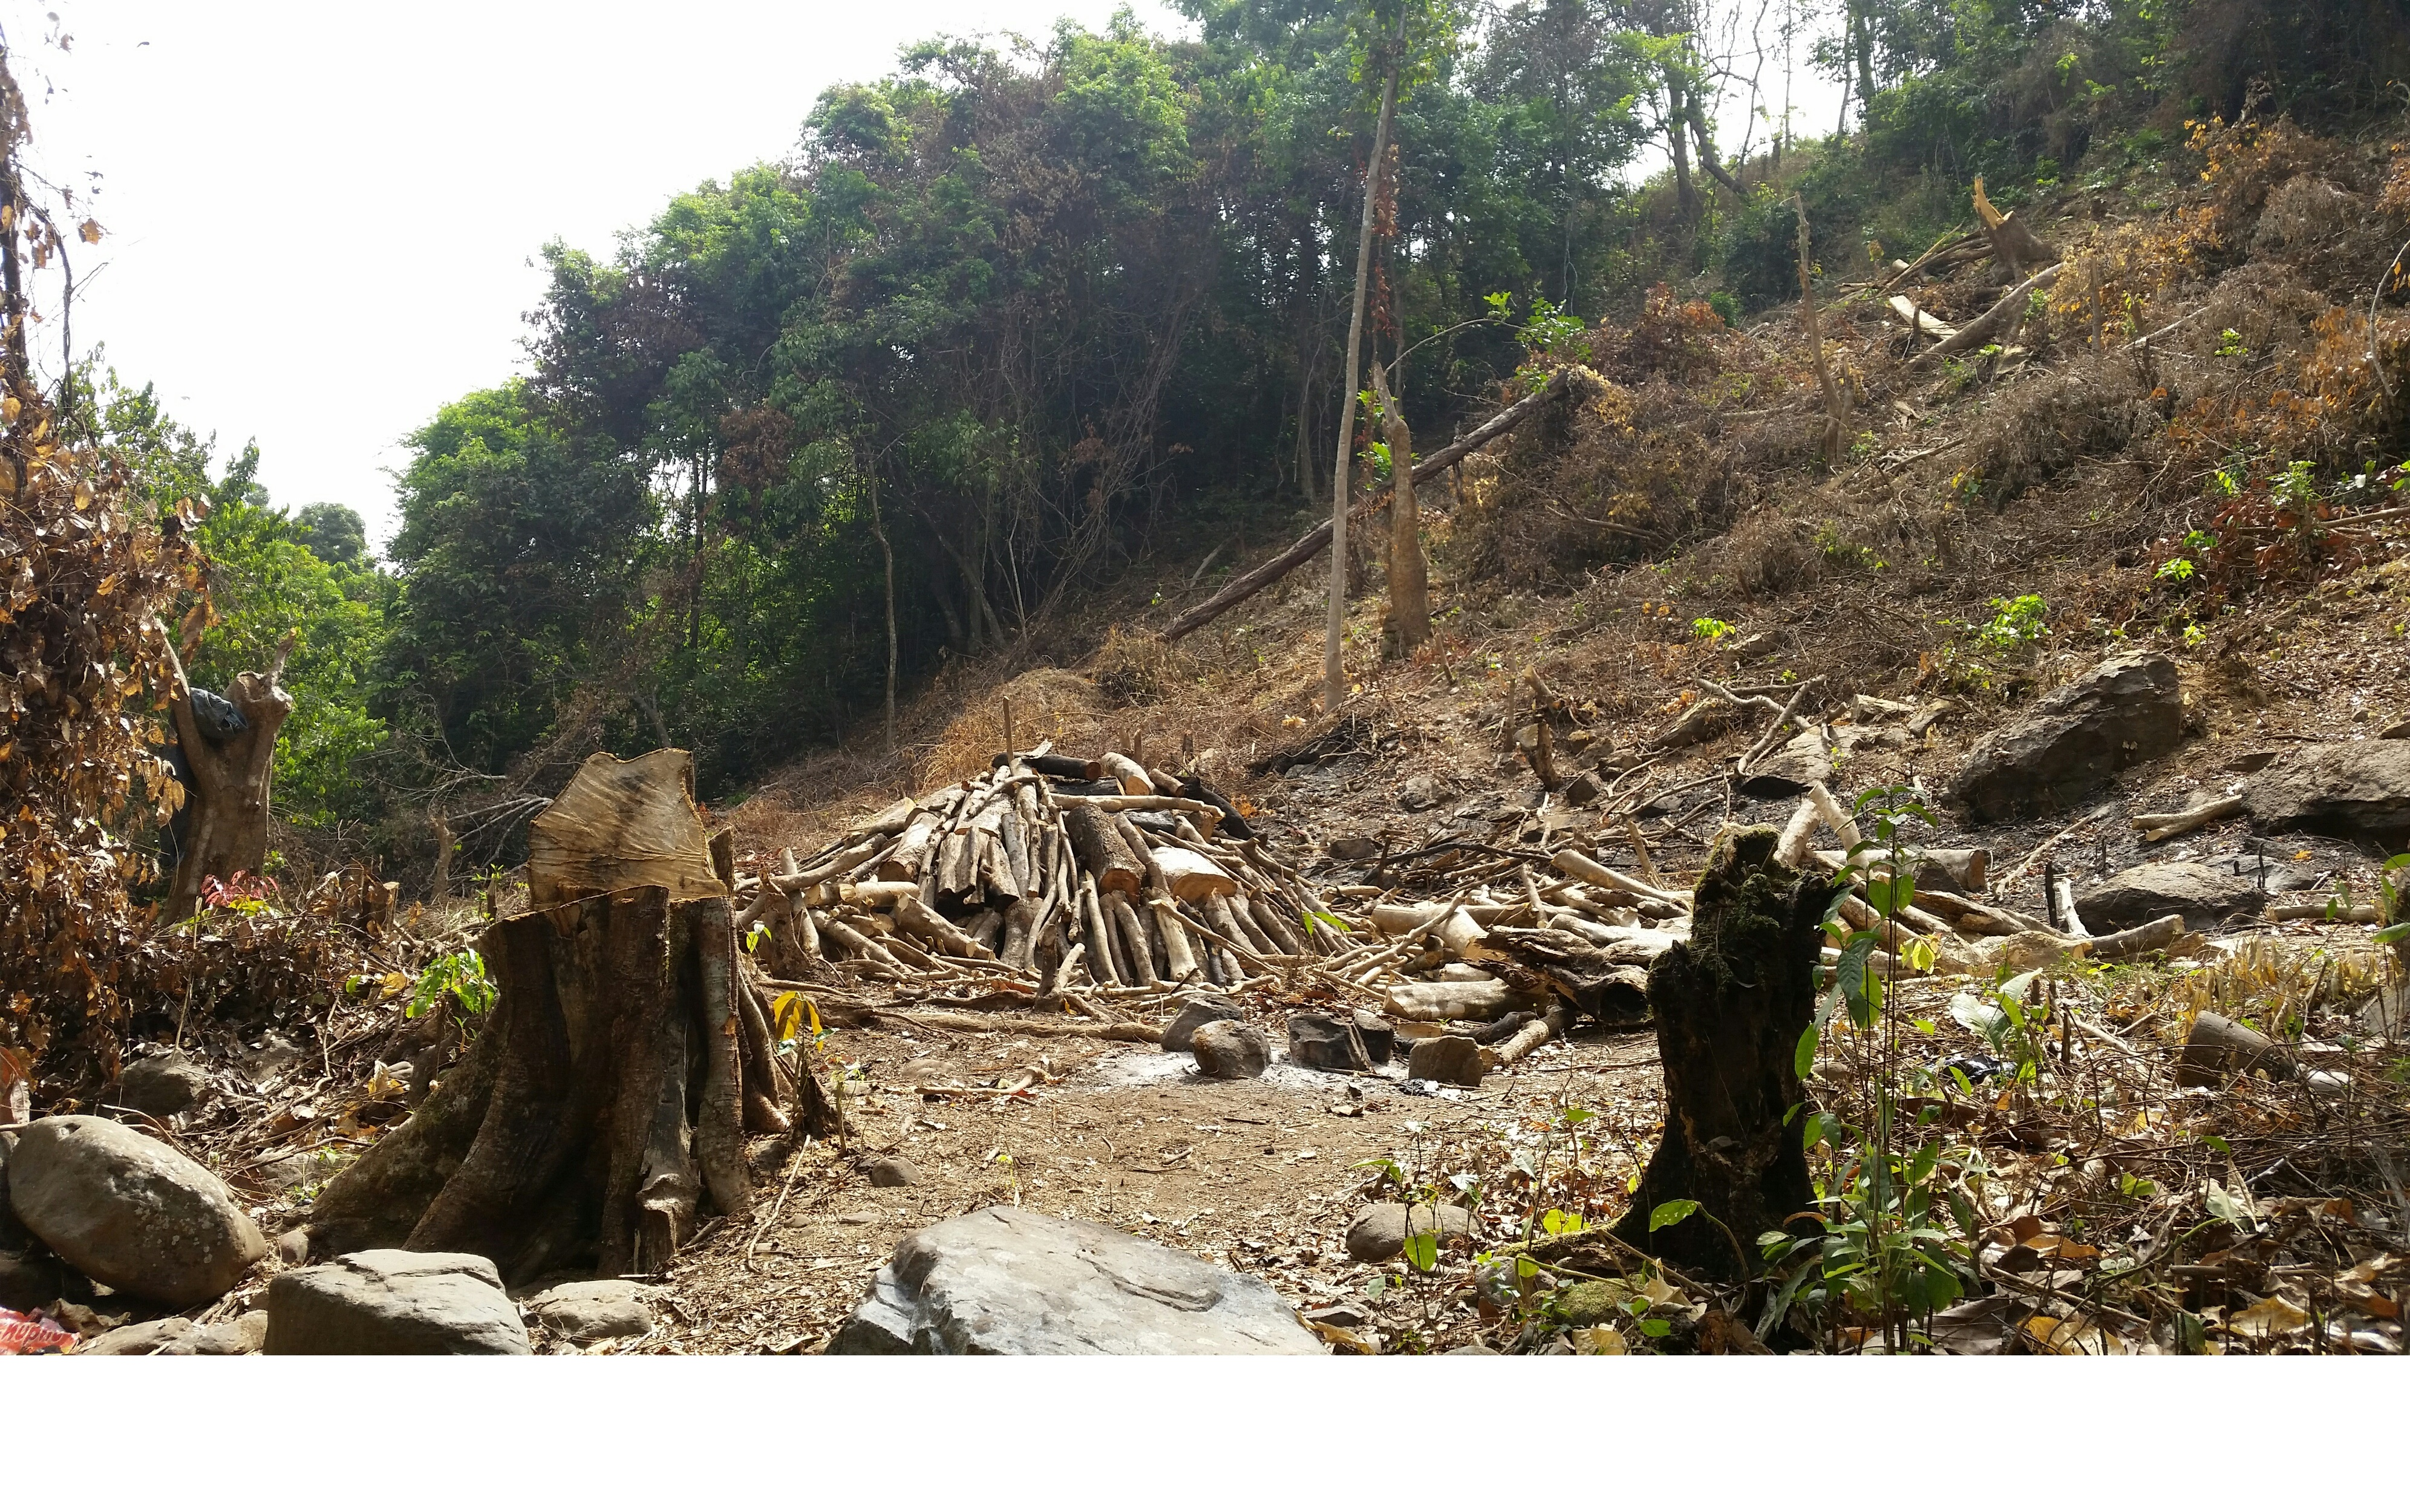 Tree-felling in the Gbalan Forest reserve, Guinea